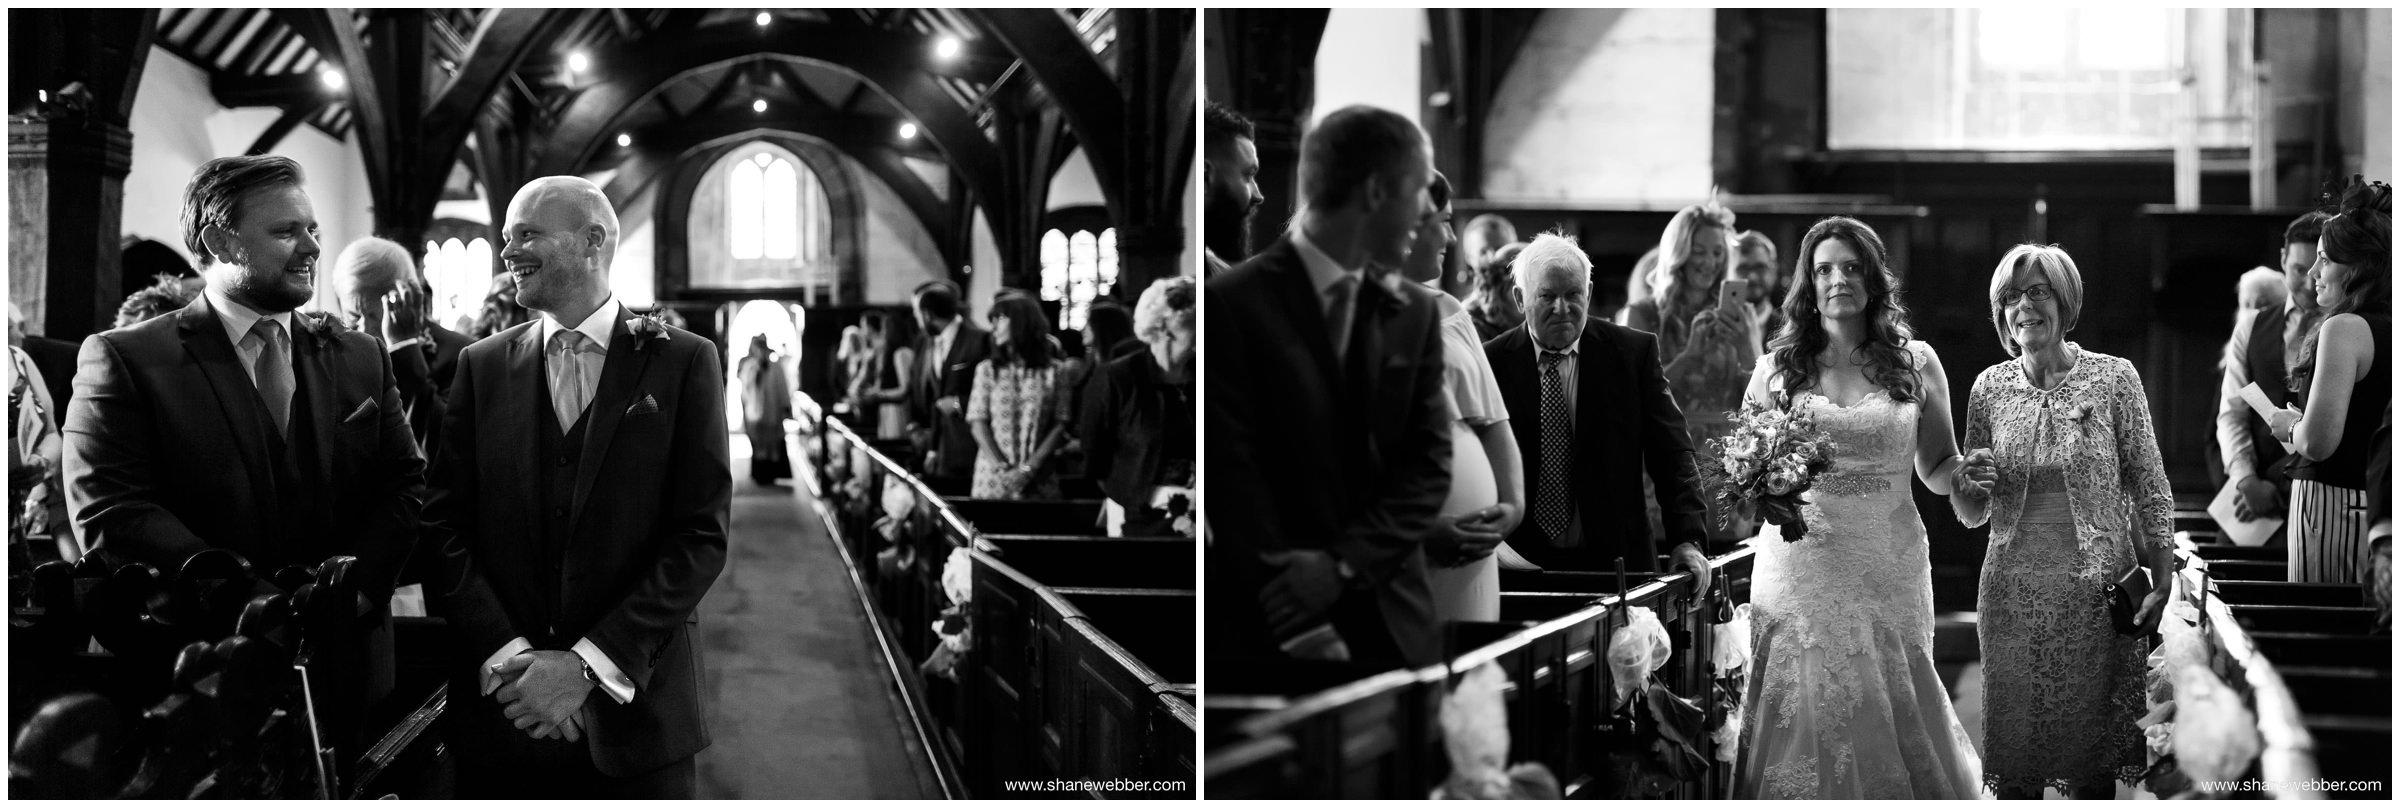 Wedding Photography at Saint Oswald's Church in Lower Peover